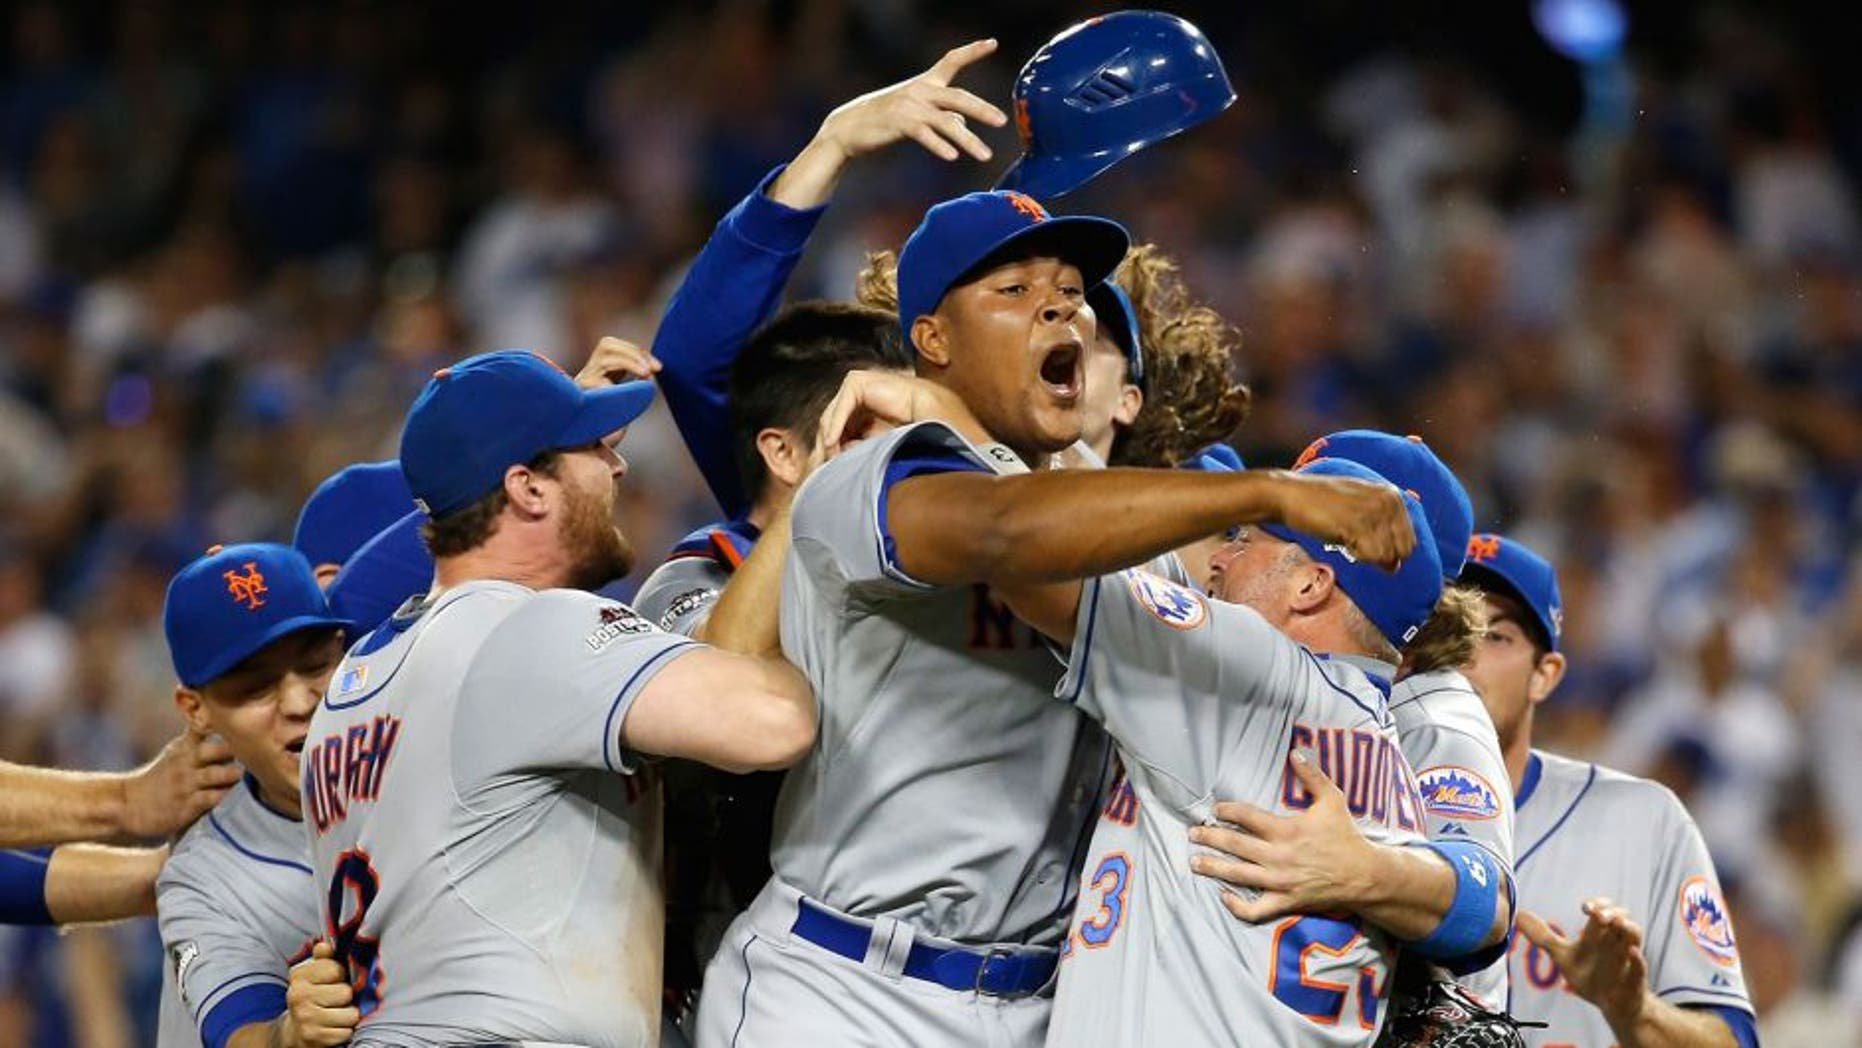 LOS ANGELES, CA - OCTOBER 15: Jeurys Familia #27 of the New York Mets celebrates after the Mets 3-2 victory against the Los Angeles Dodgers in game five of the National League Division Series at Dodger Stadium on October 15, 2015 in Los Angeles, California. (Photo by Sean M. Haffey/Getty Images)